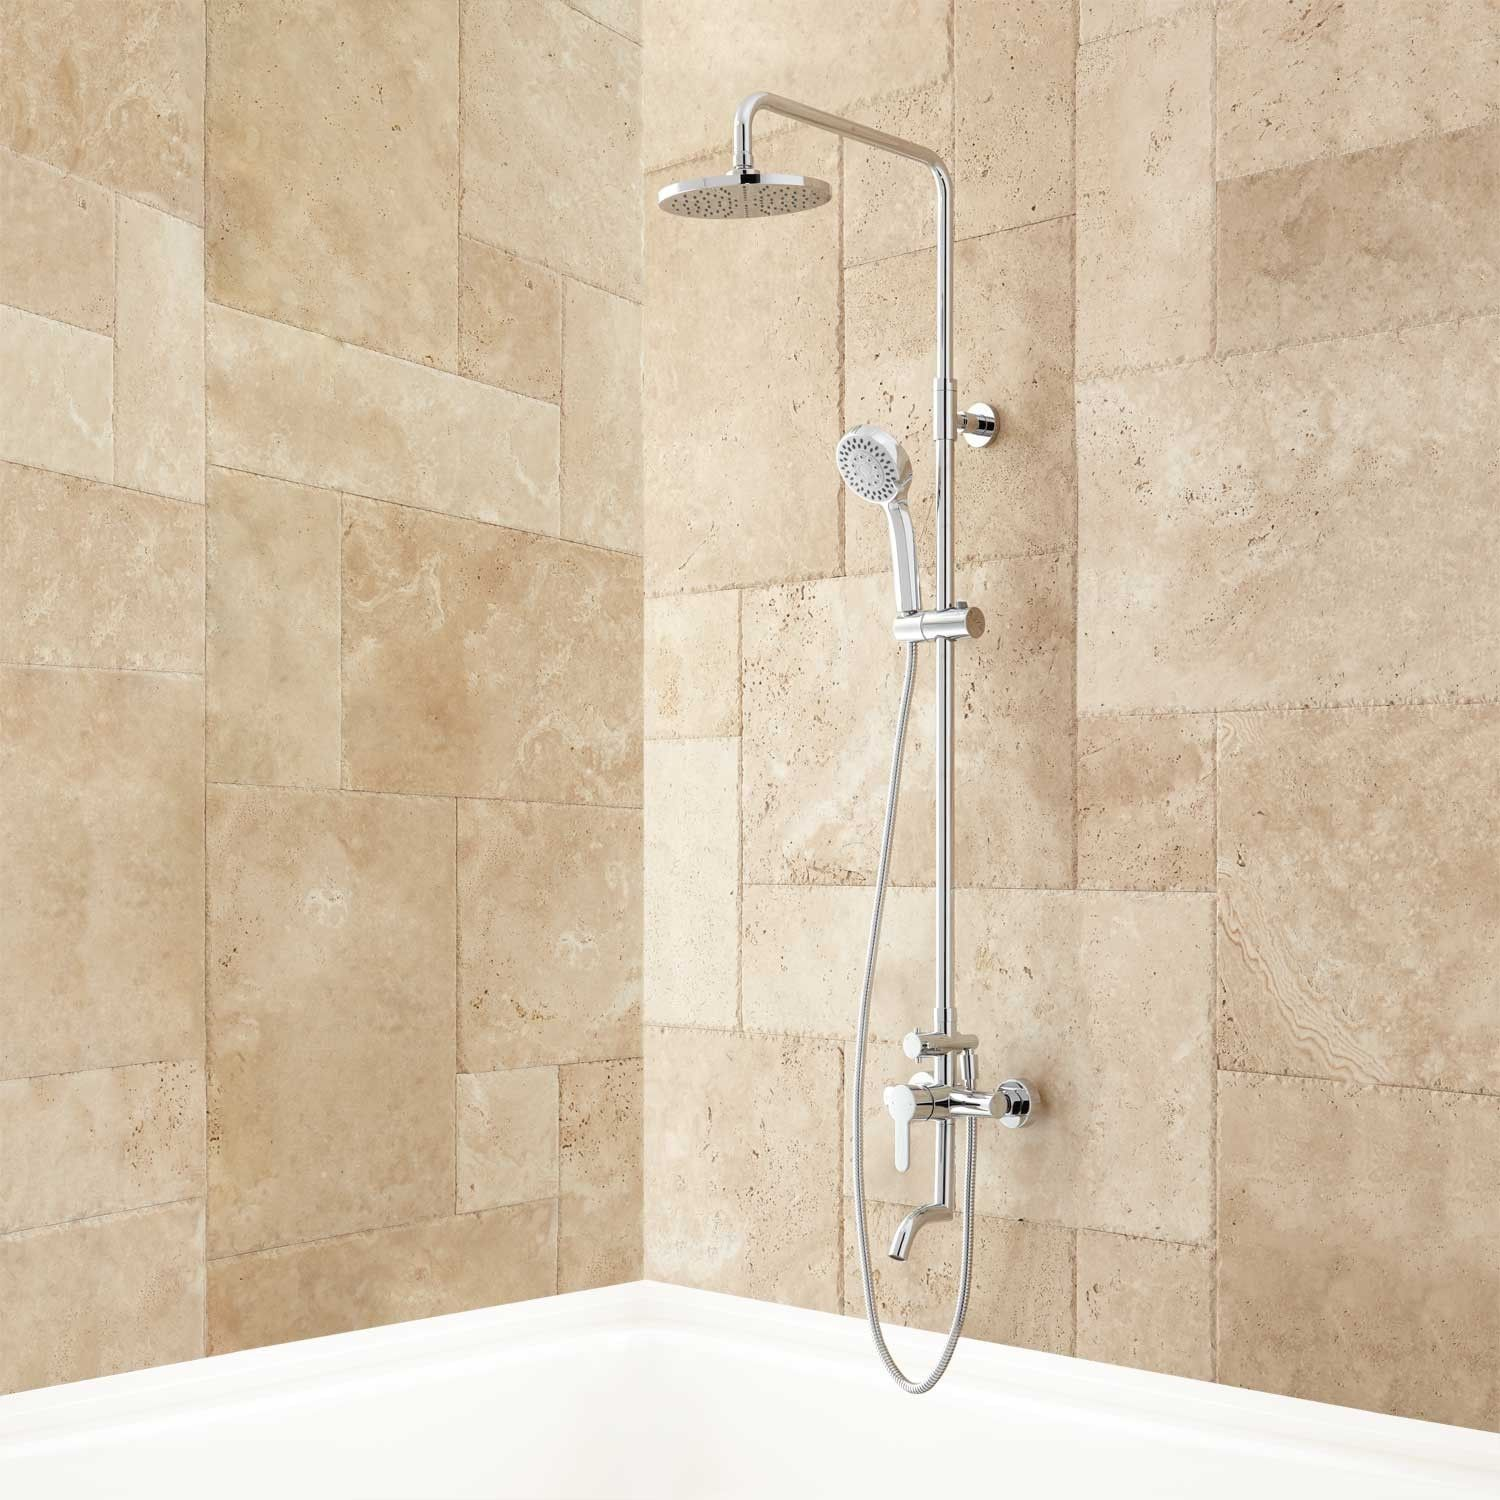 The Mustaine Exposed Pipe Tub And Shower Set Is Designed To Bring Long Lasting Luxury To Your Bathroom This Product Features A Rainfall Shower Head And Tub